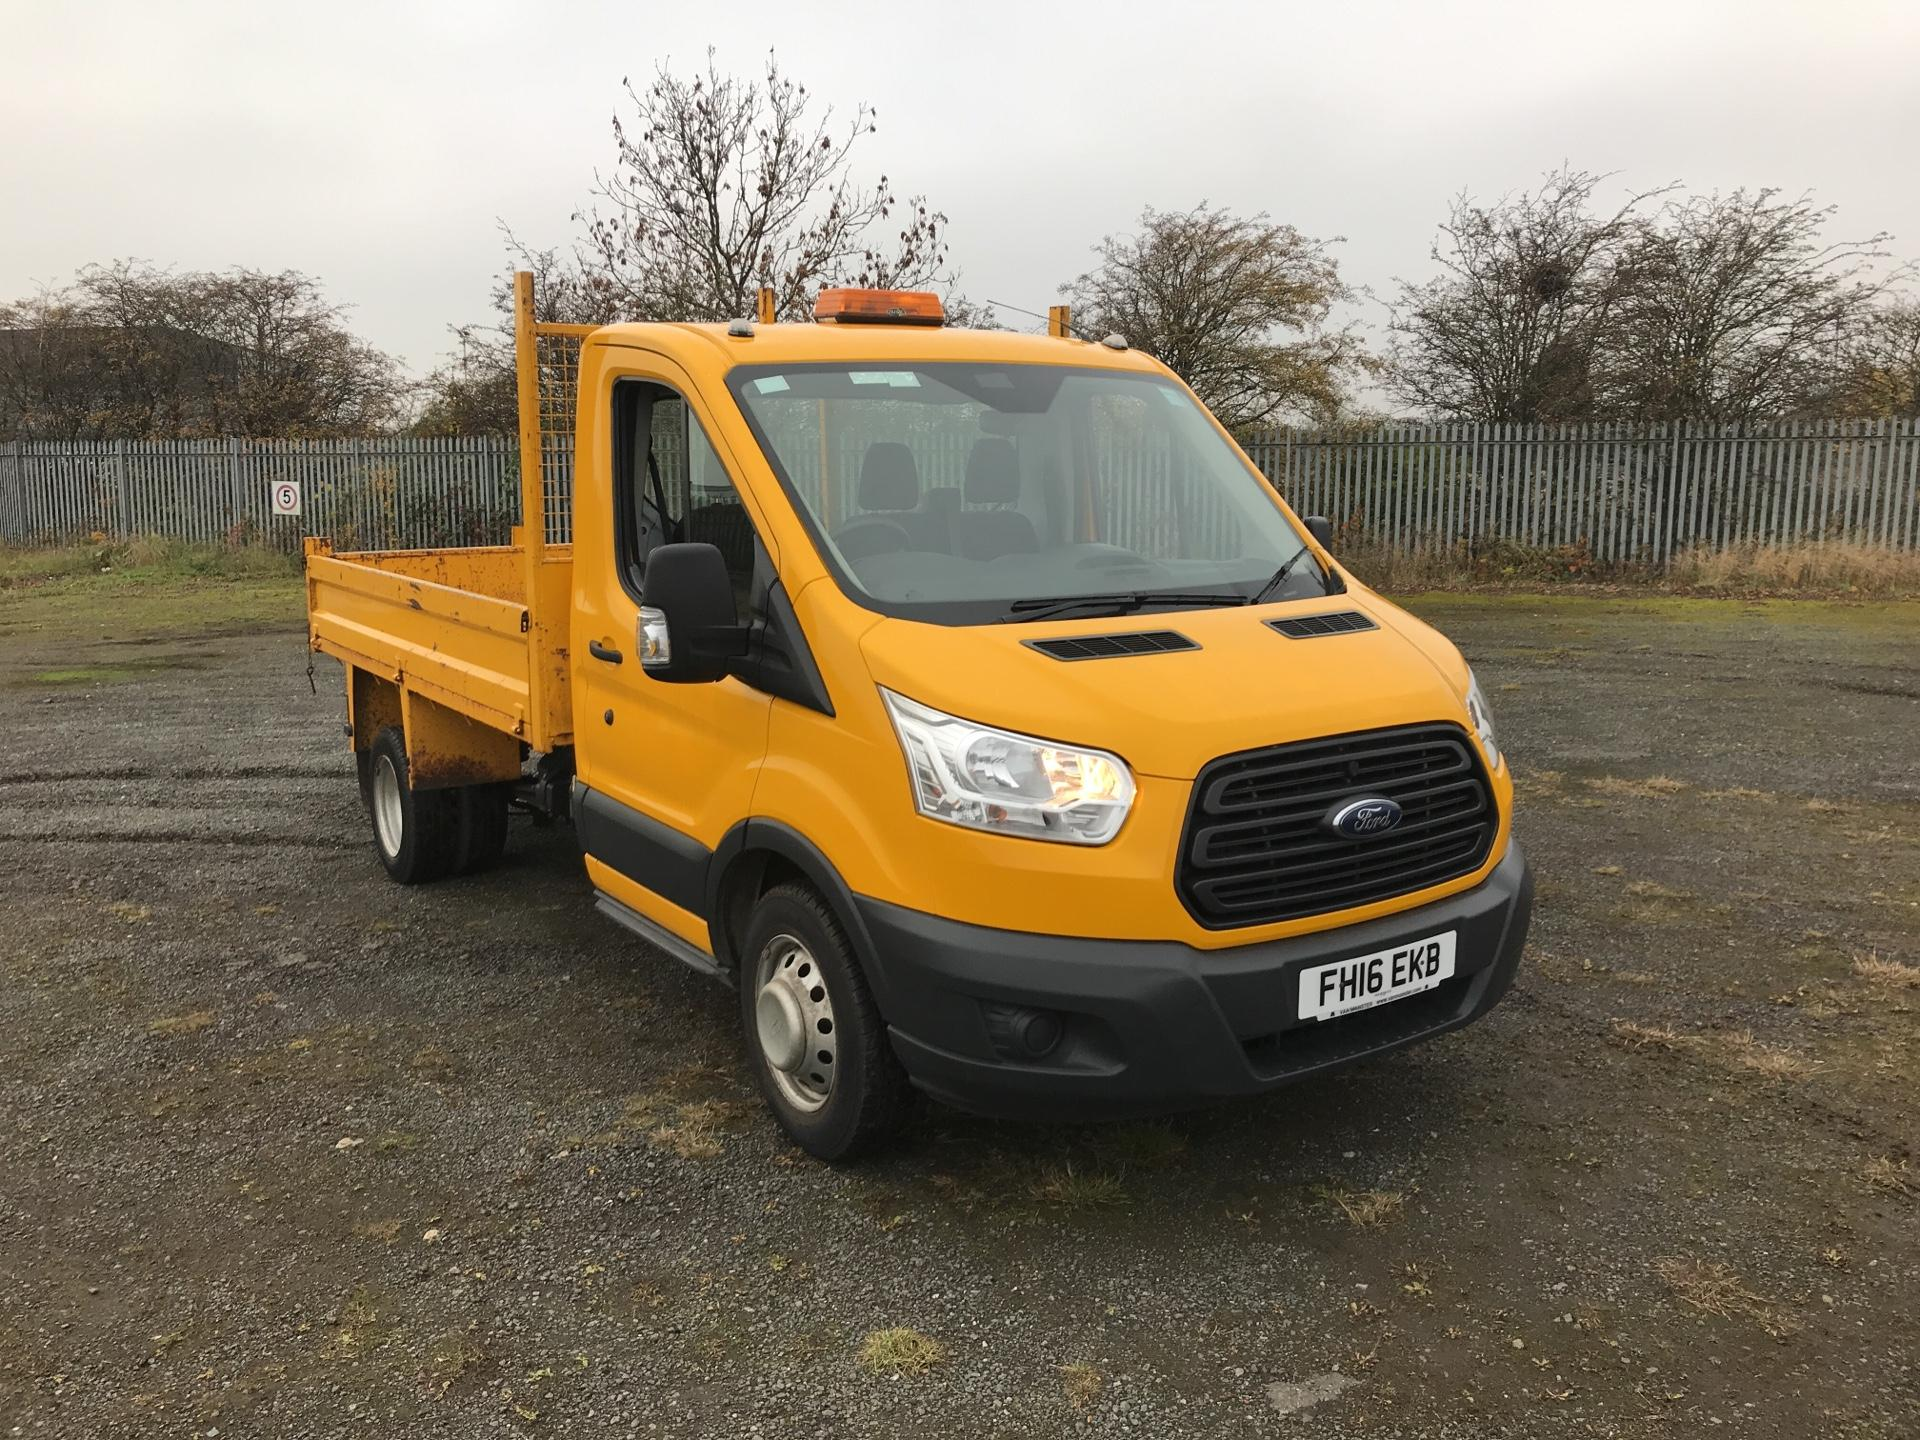 2016 Ford Transit  350 L2 SINGLE CAB TIPPER 100PS EURO 5 *VALUE RANGE VEHICLE - CONDITION REFLECTED IN PRICE* (FH16EKB)